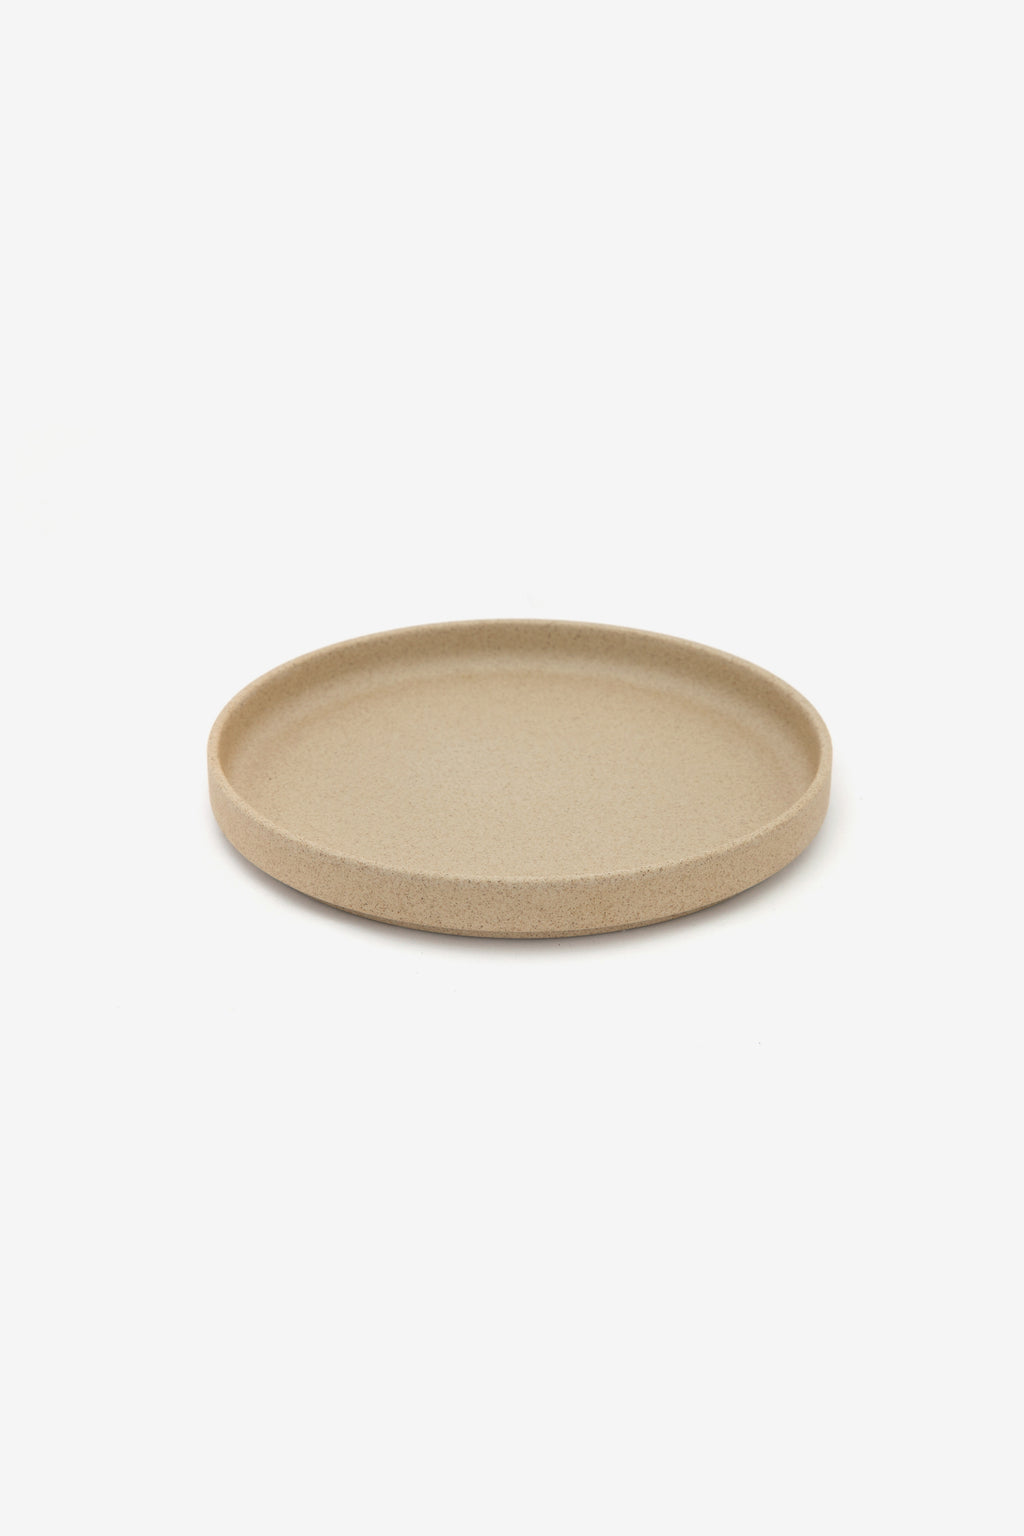 Hasami Natural Plate Medium